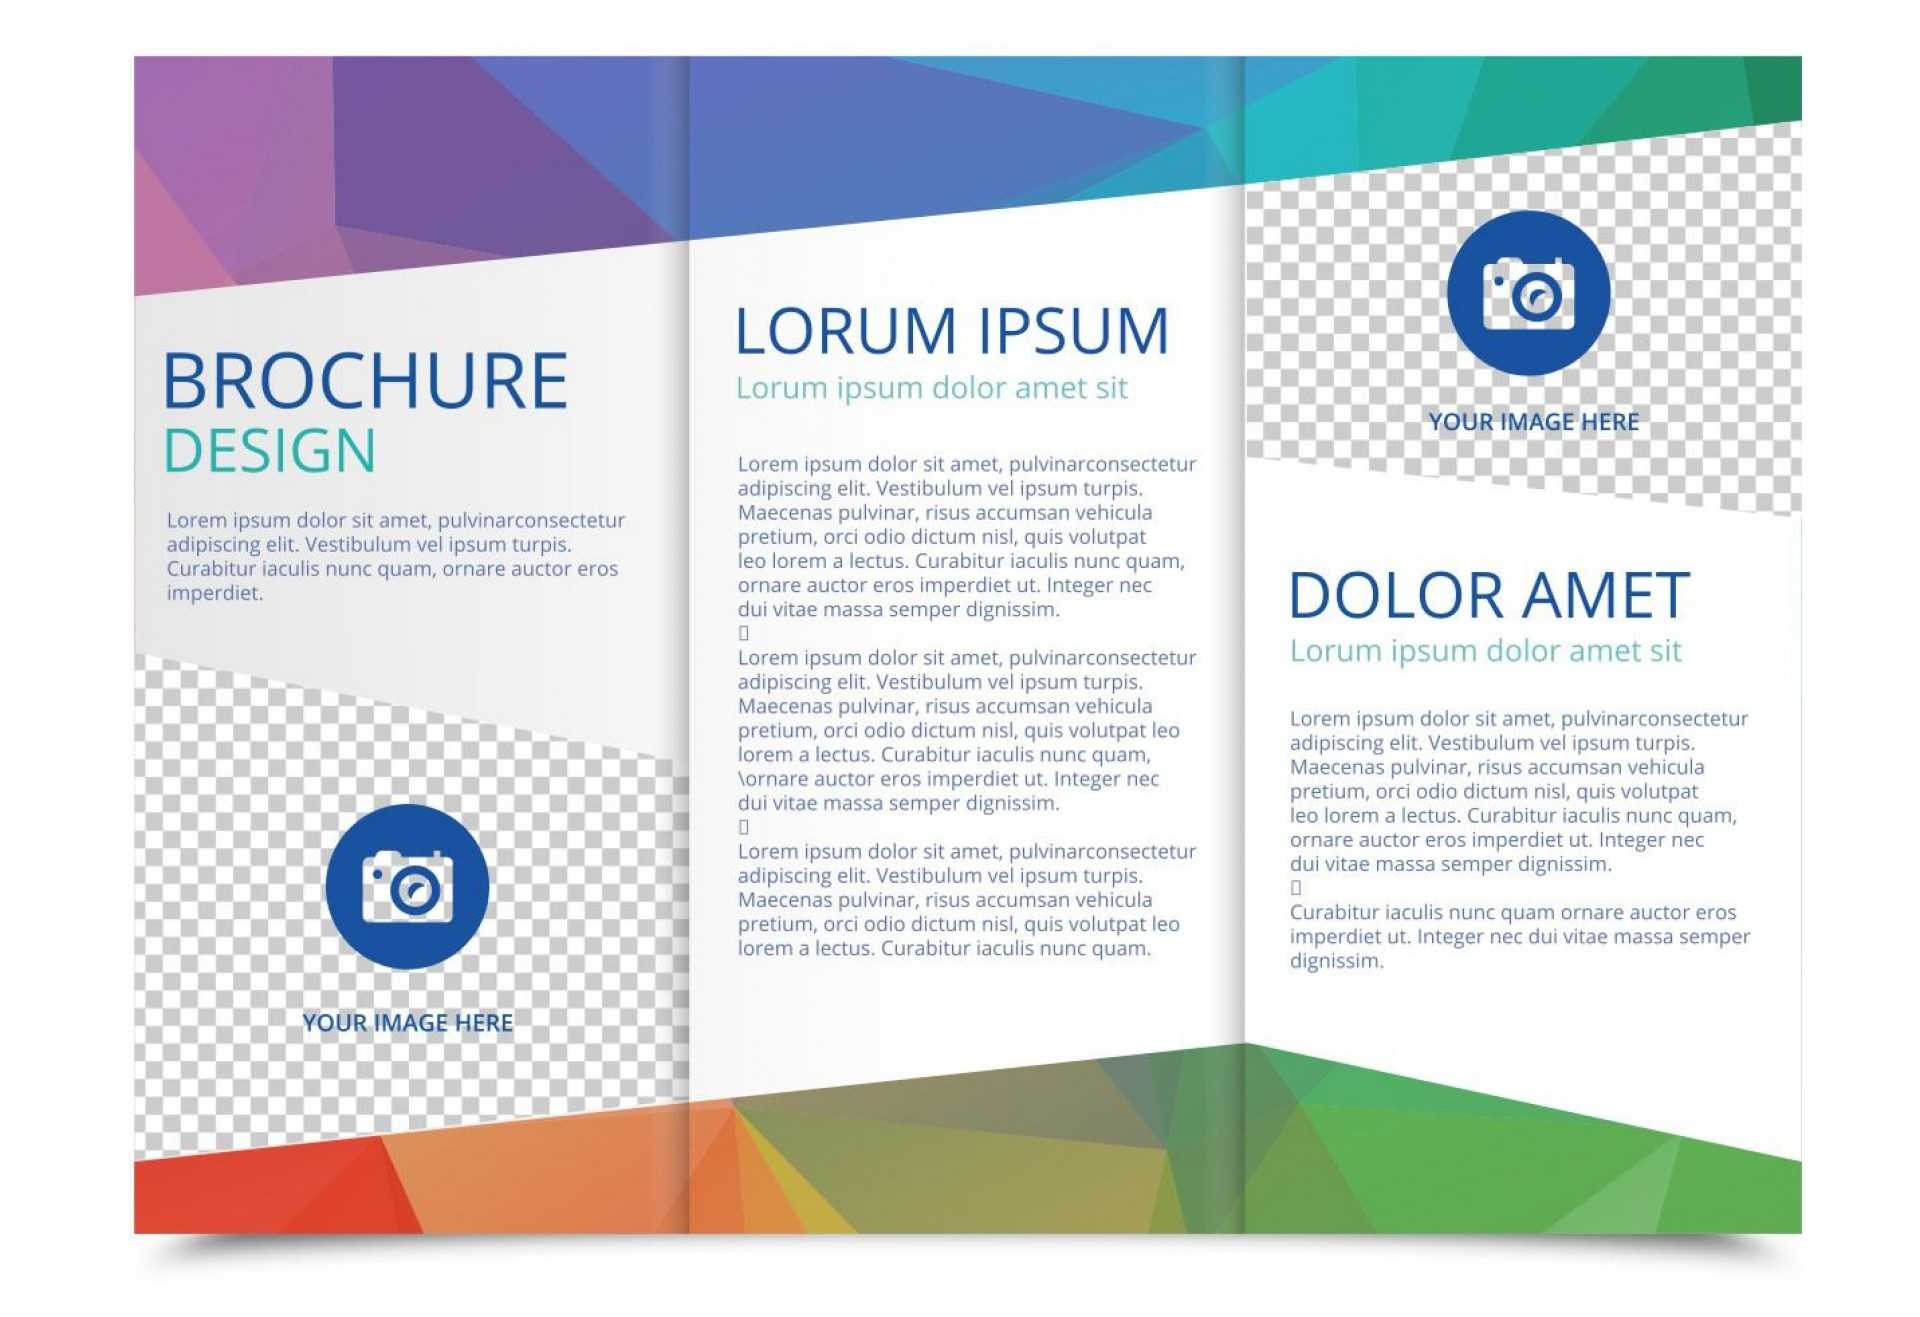 009 Simple 3 Fold Brochure Template Free High Def  Word Download1920